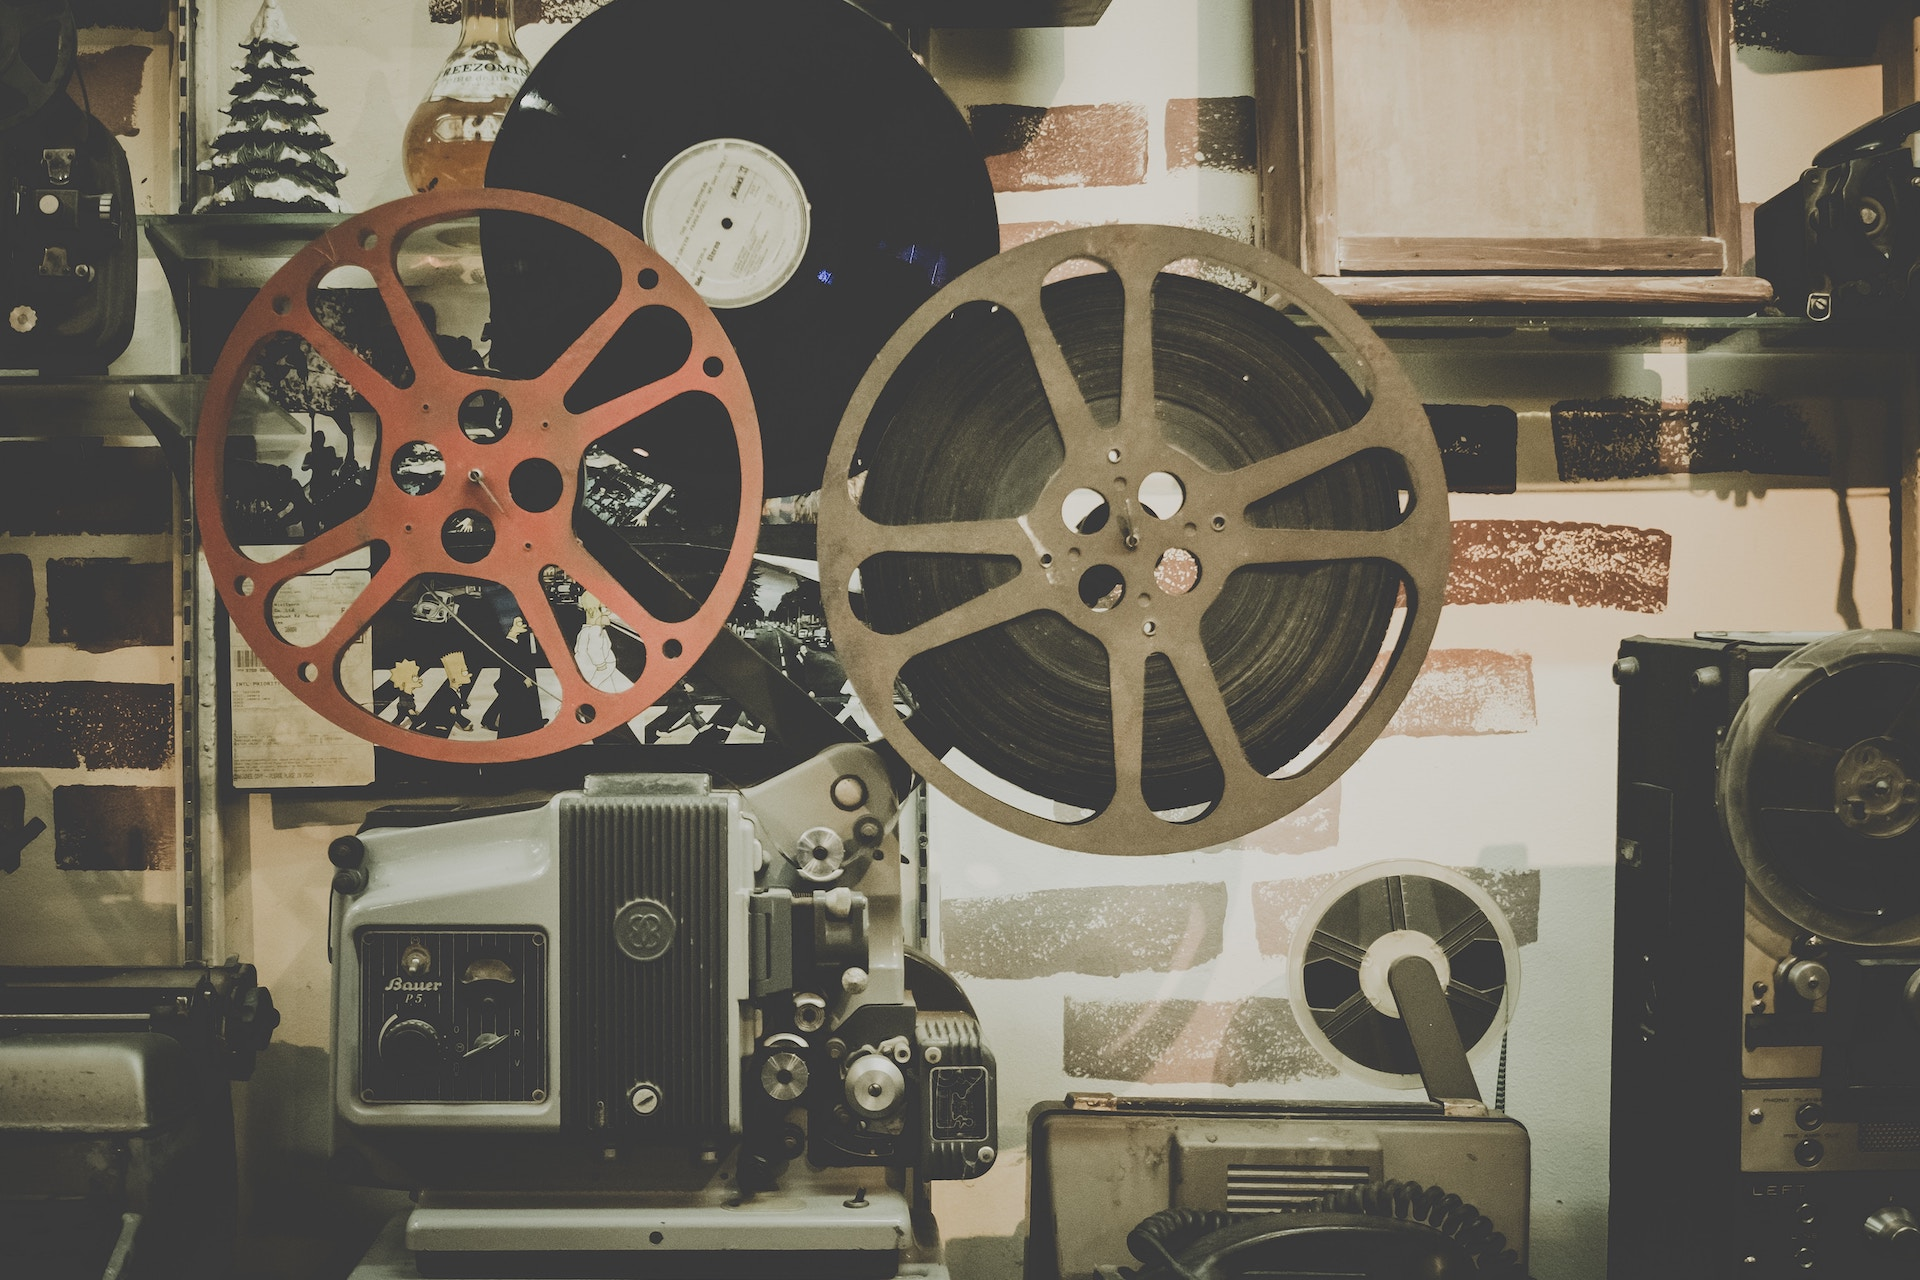 Film reels and investing in a film's success can be considered an alternative investment as it's outside of the stock market